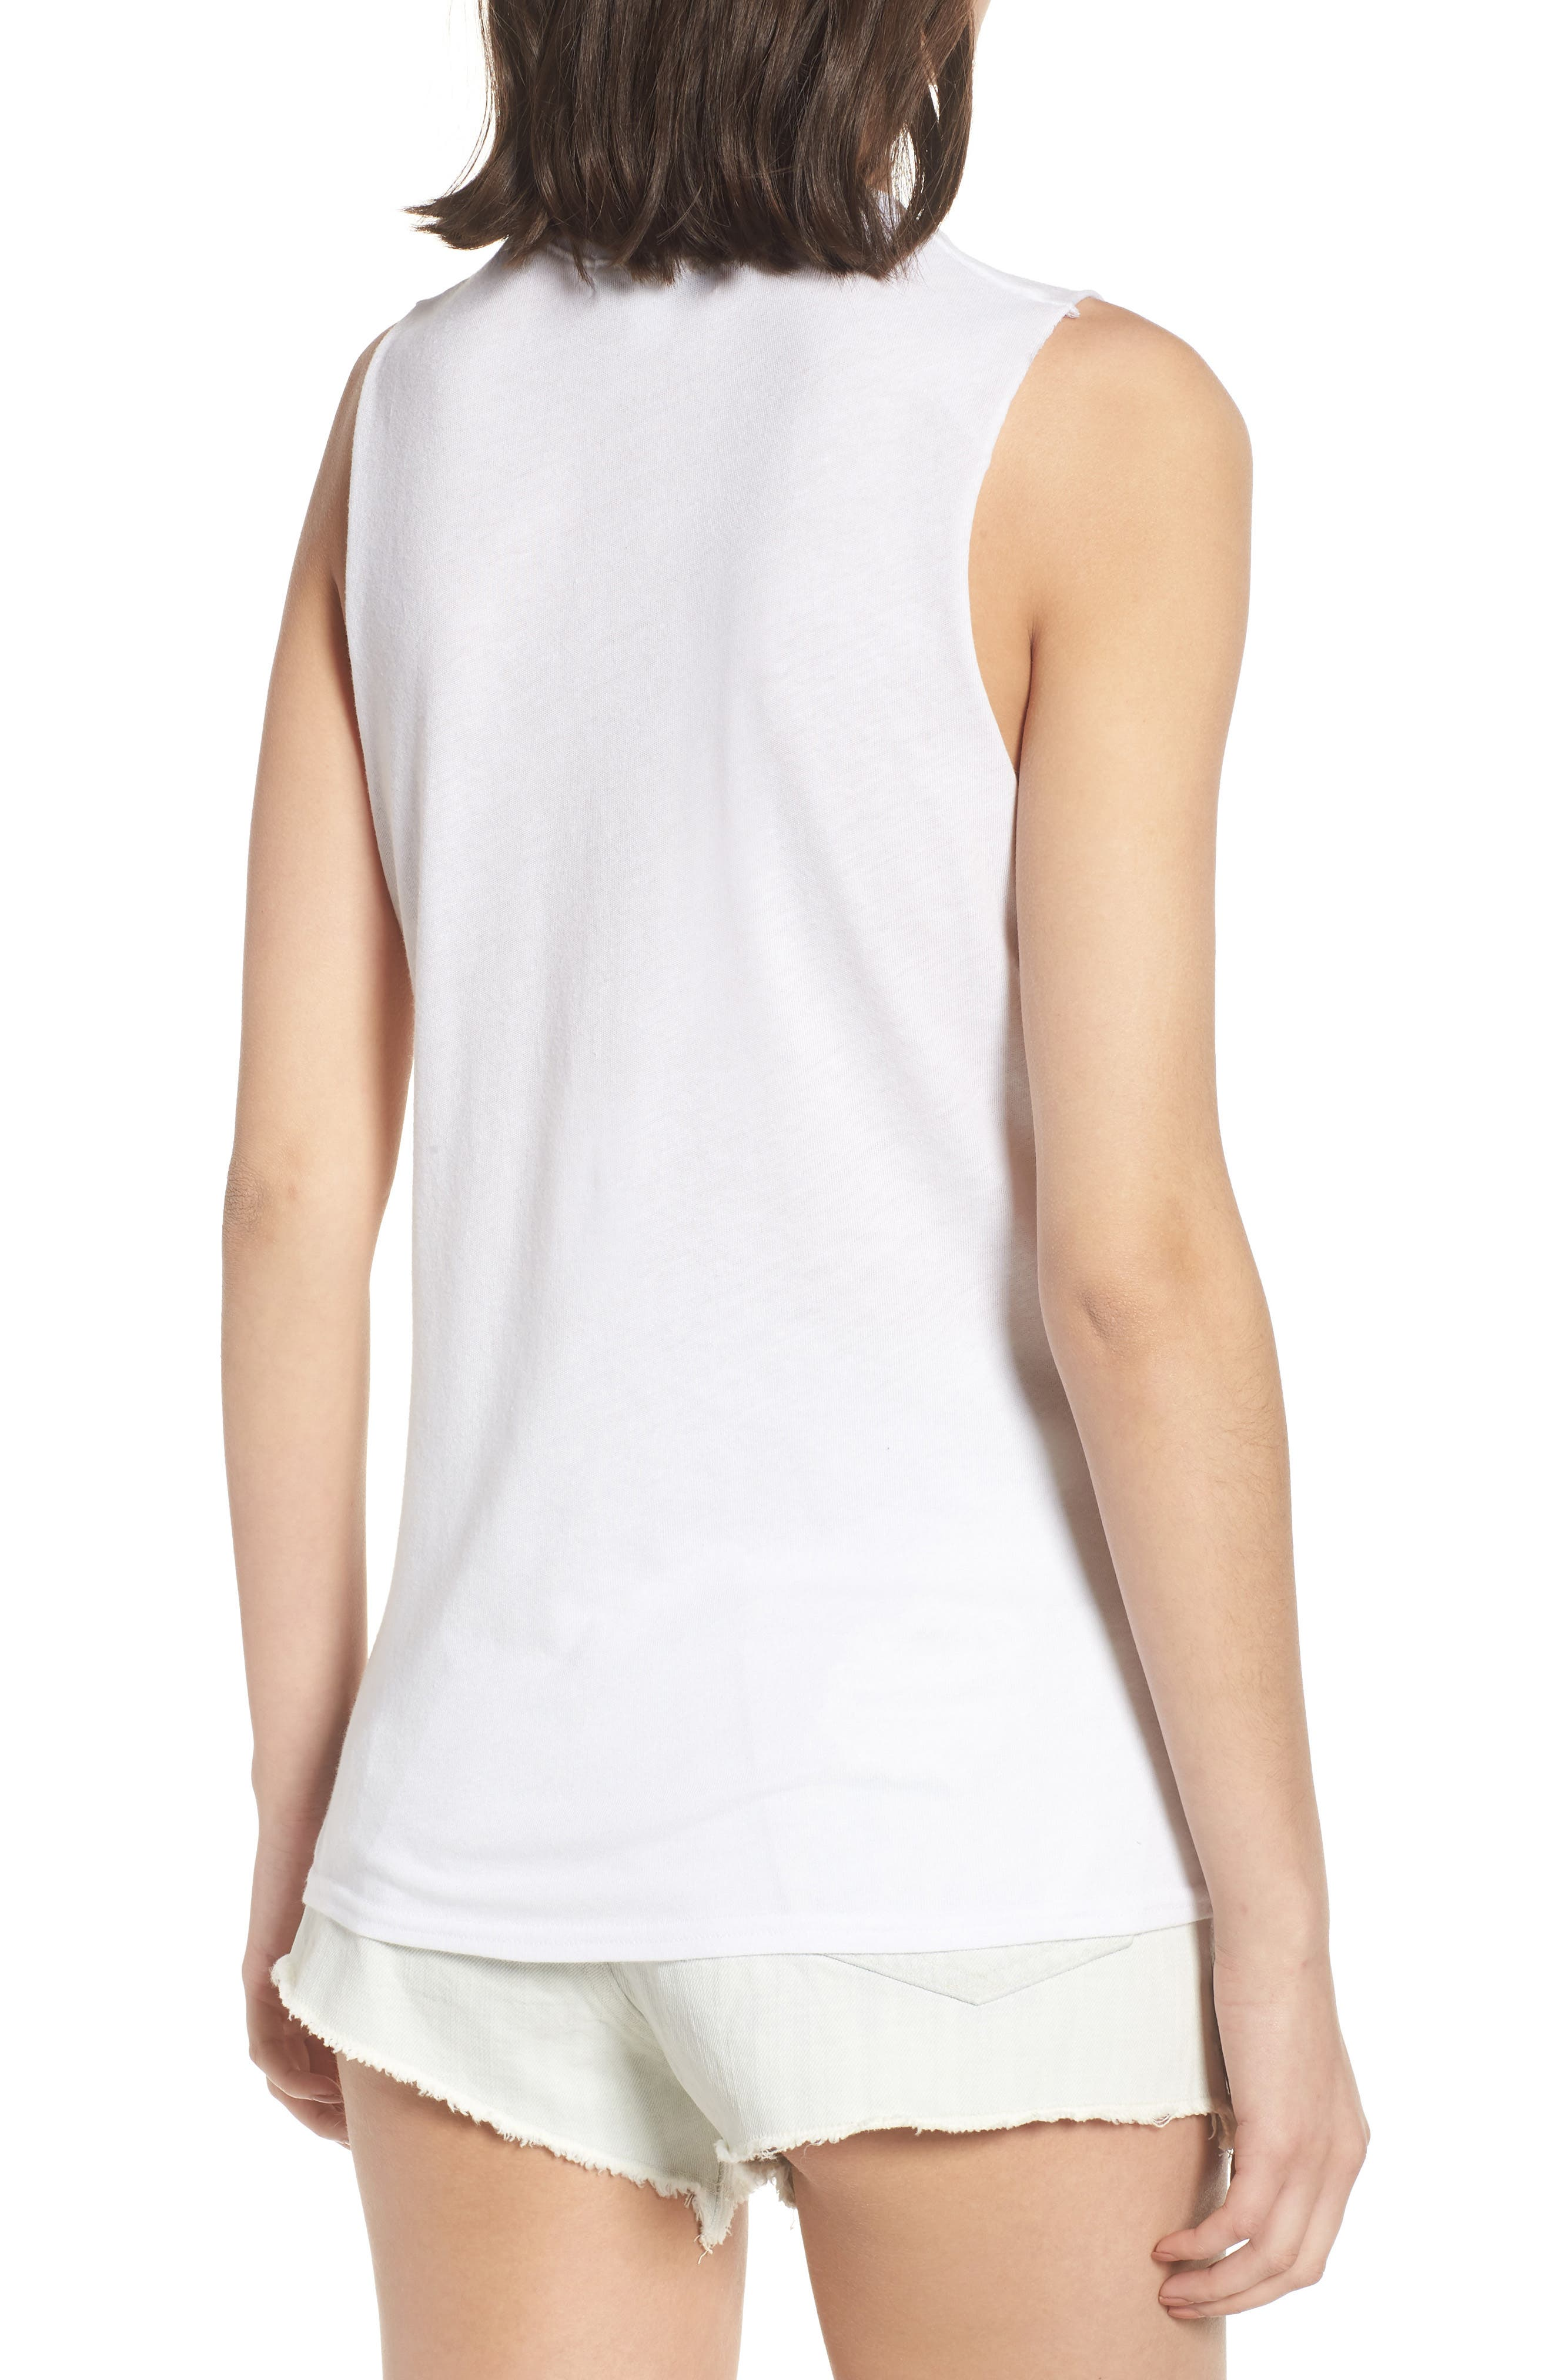 Gym and Juice Muscle Tank Top,                             Alternate thumbnail 2, color,                             White